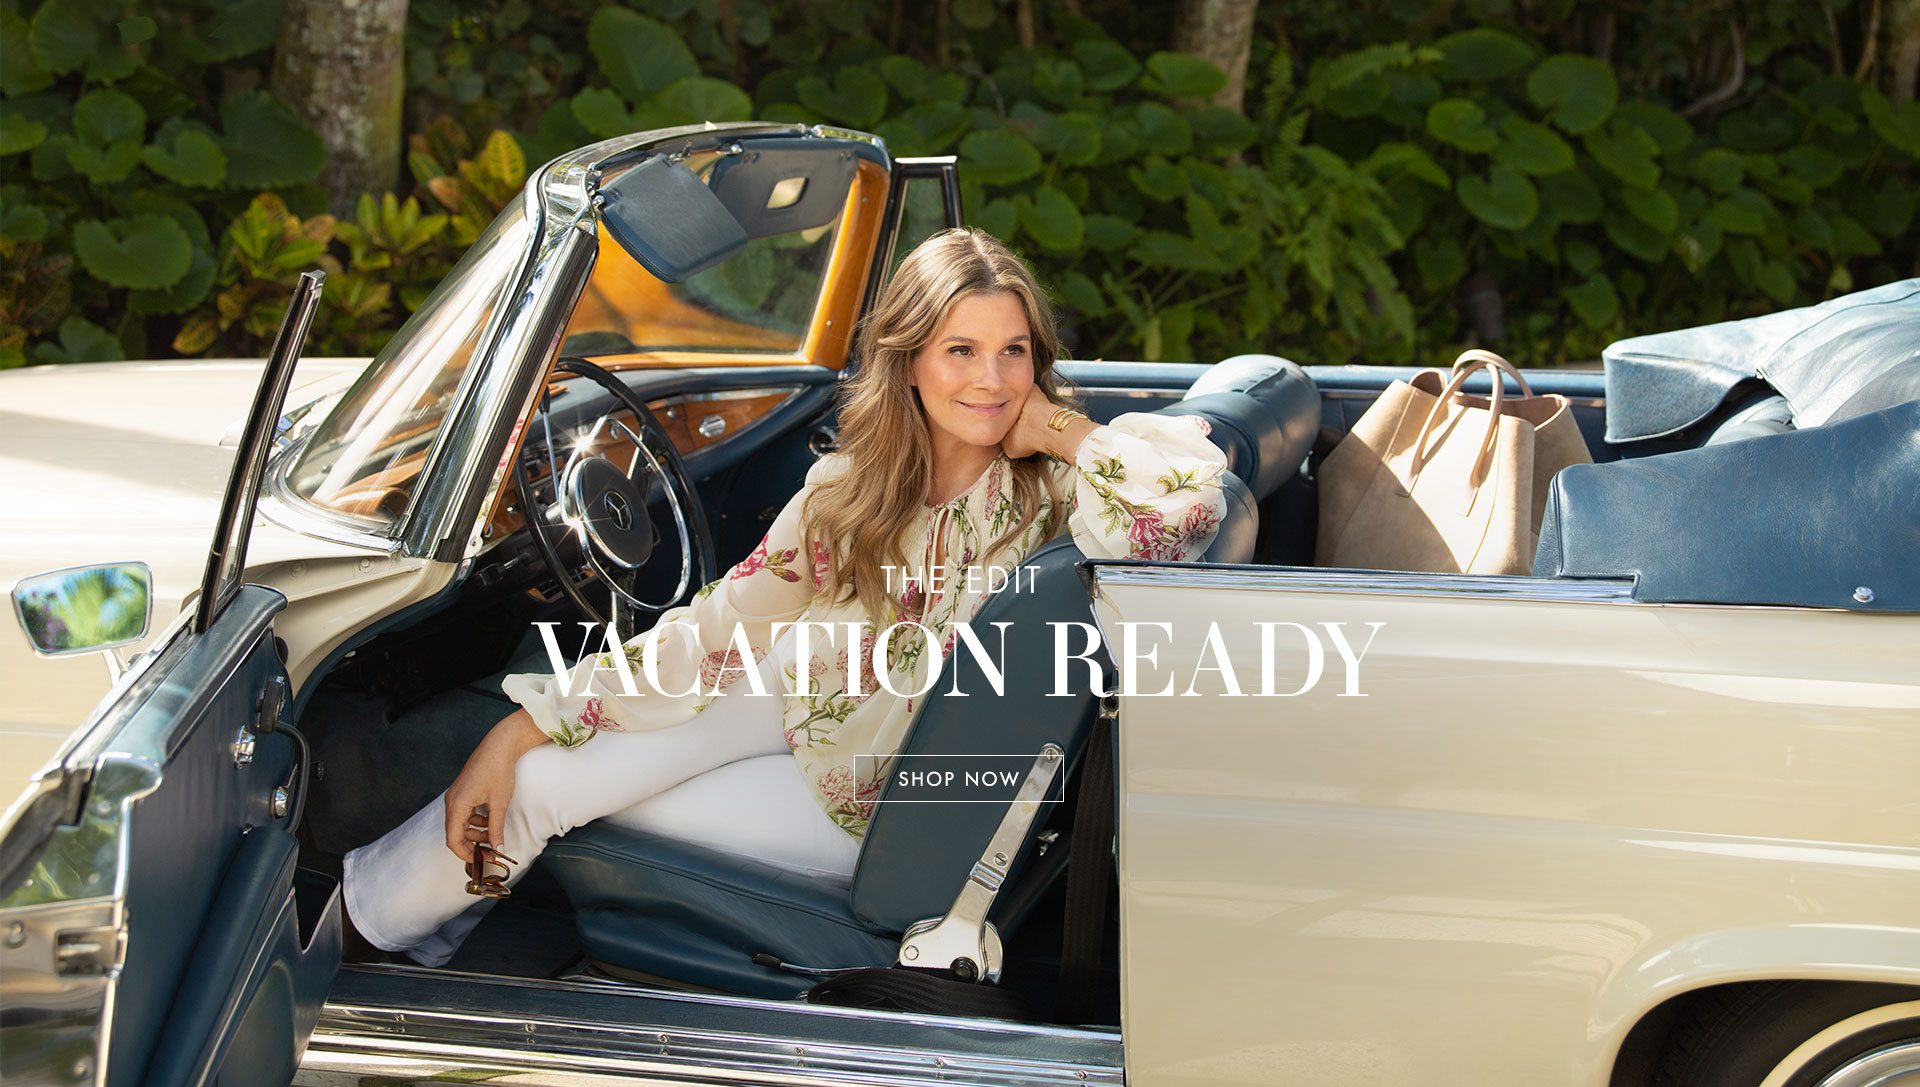 Aerin in a vintage car ready for a warm-weather spring getaway.